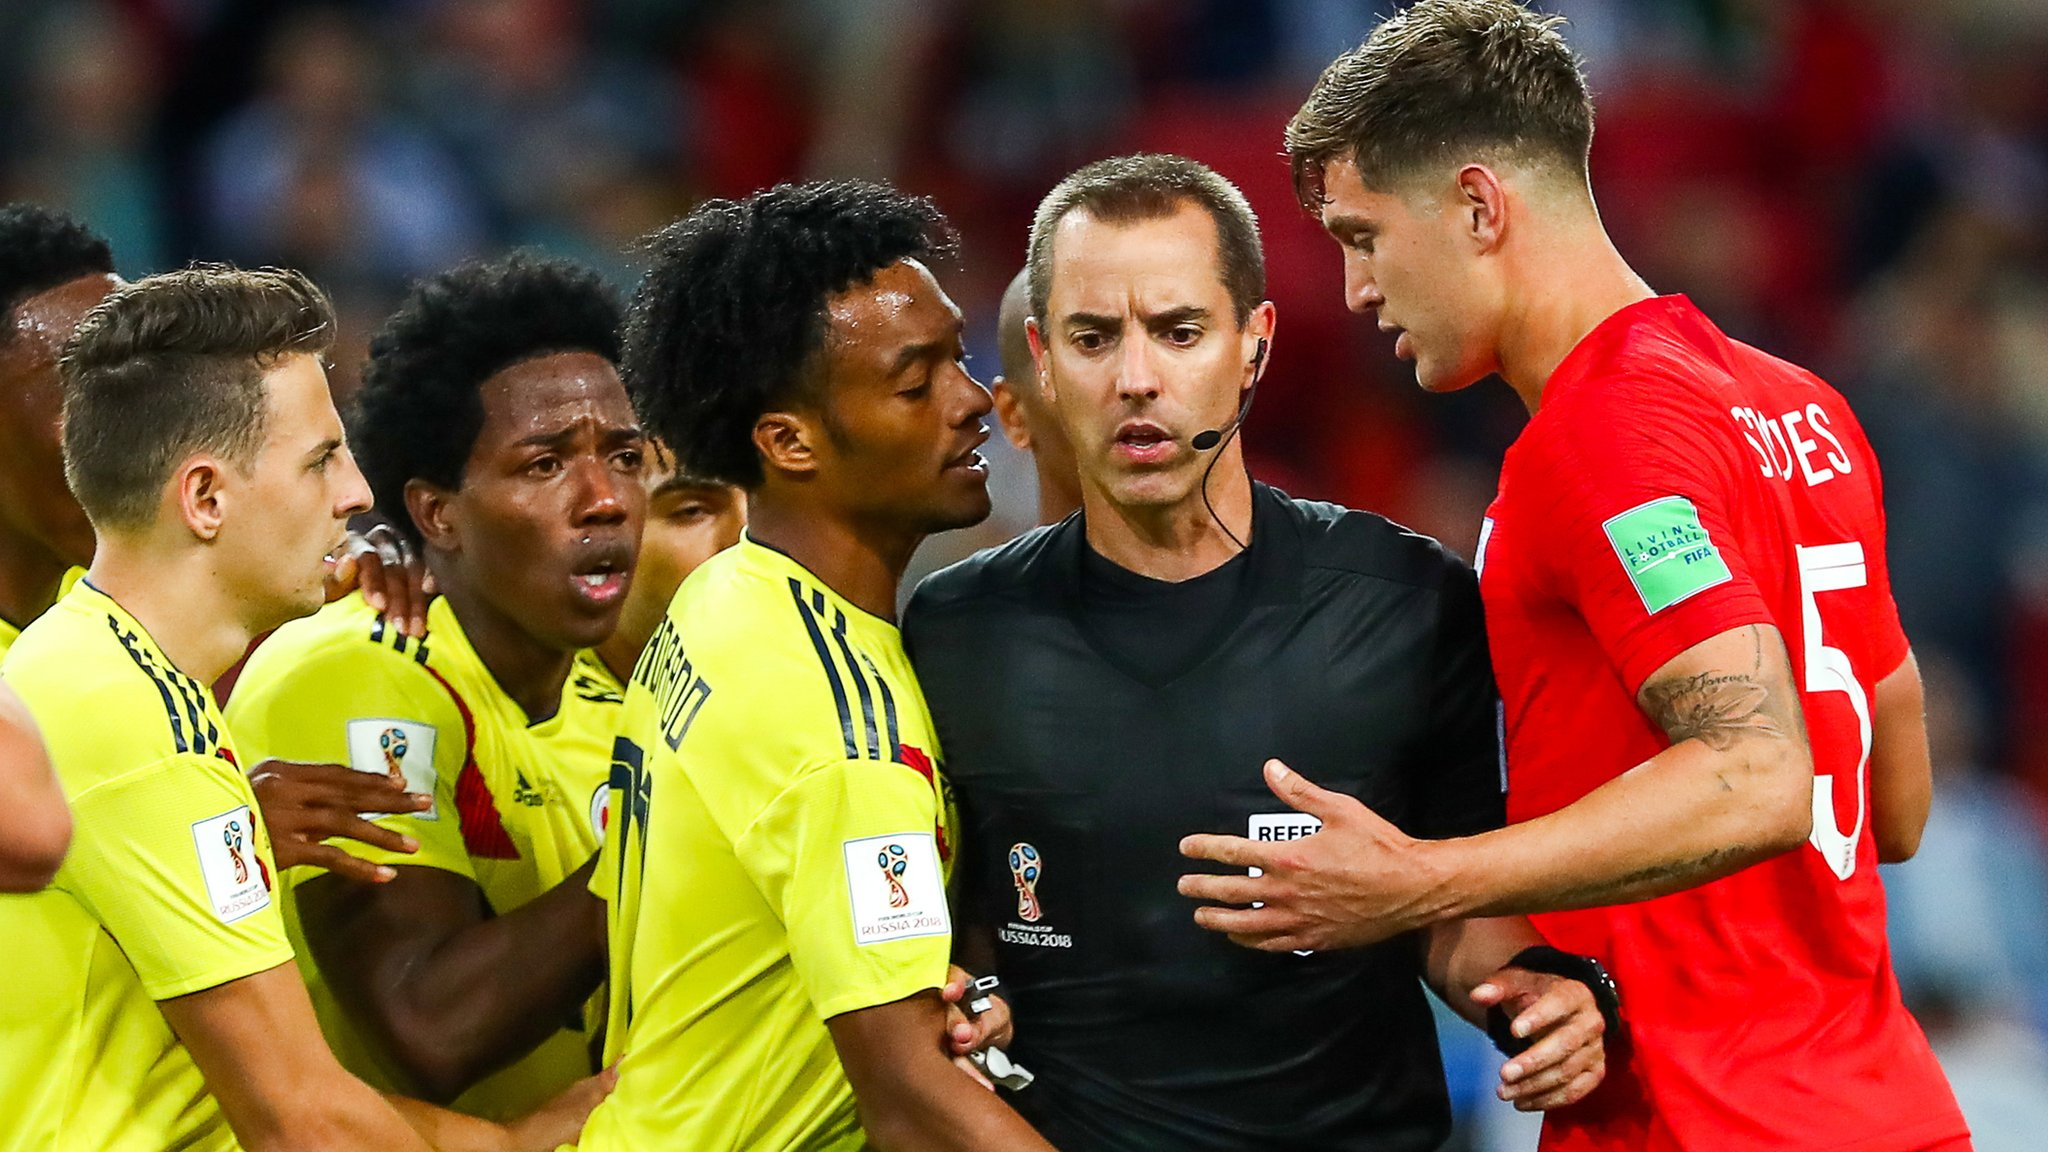 Colombia probably the dirtiest team I have faced - Stones